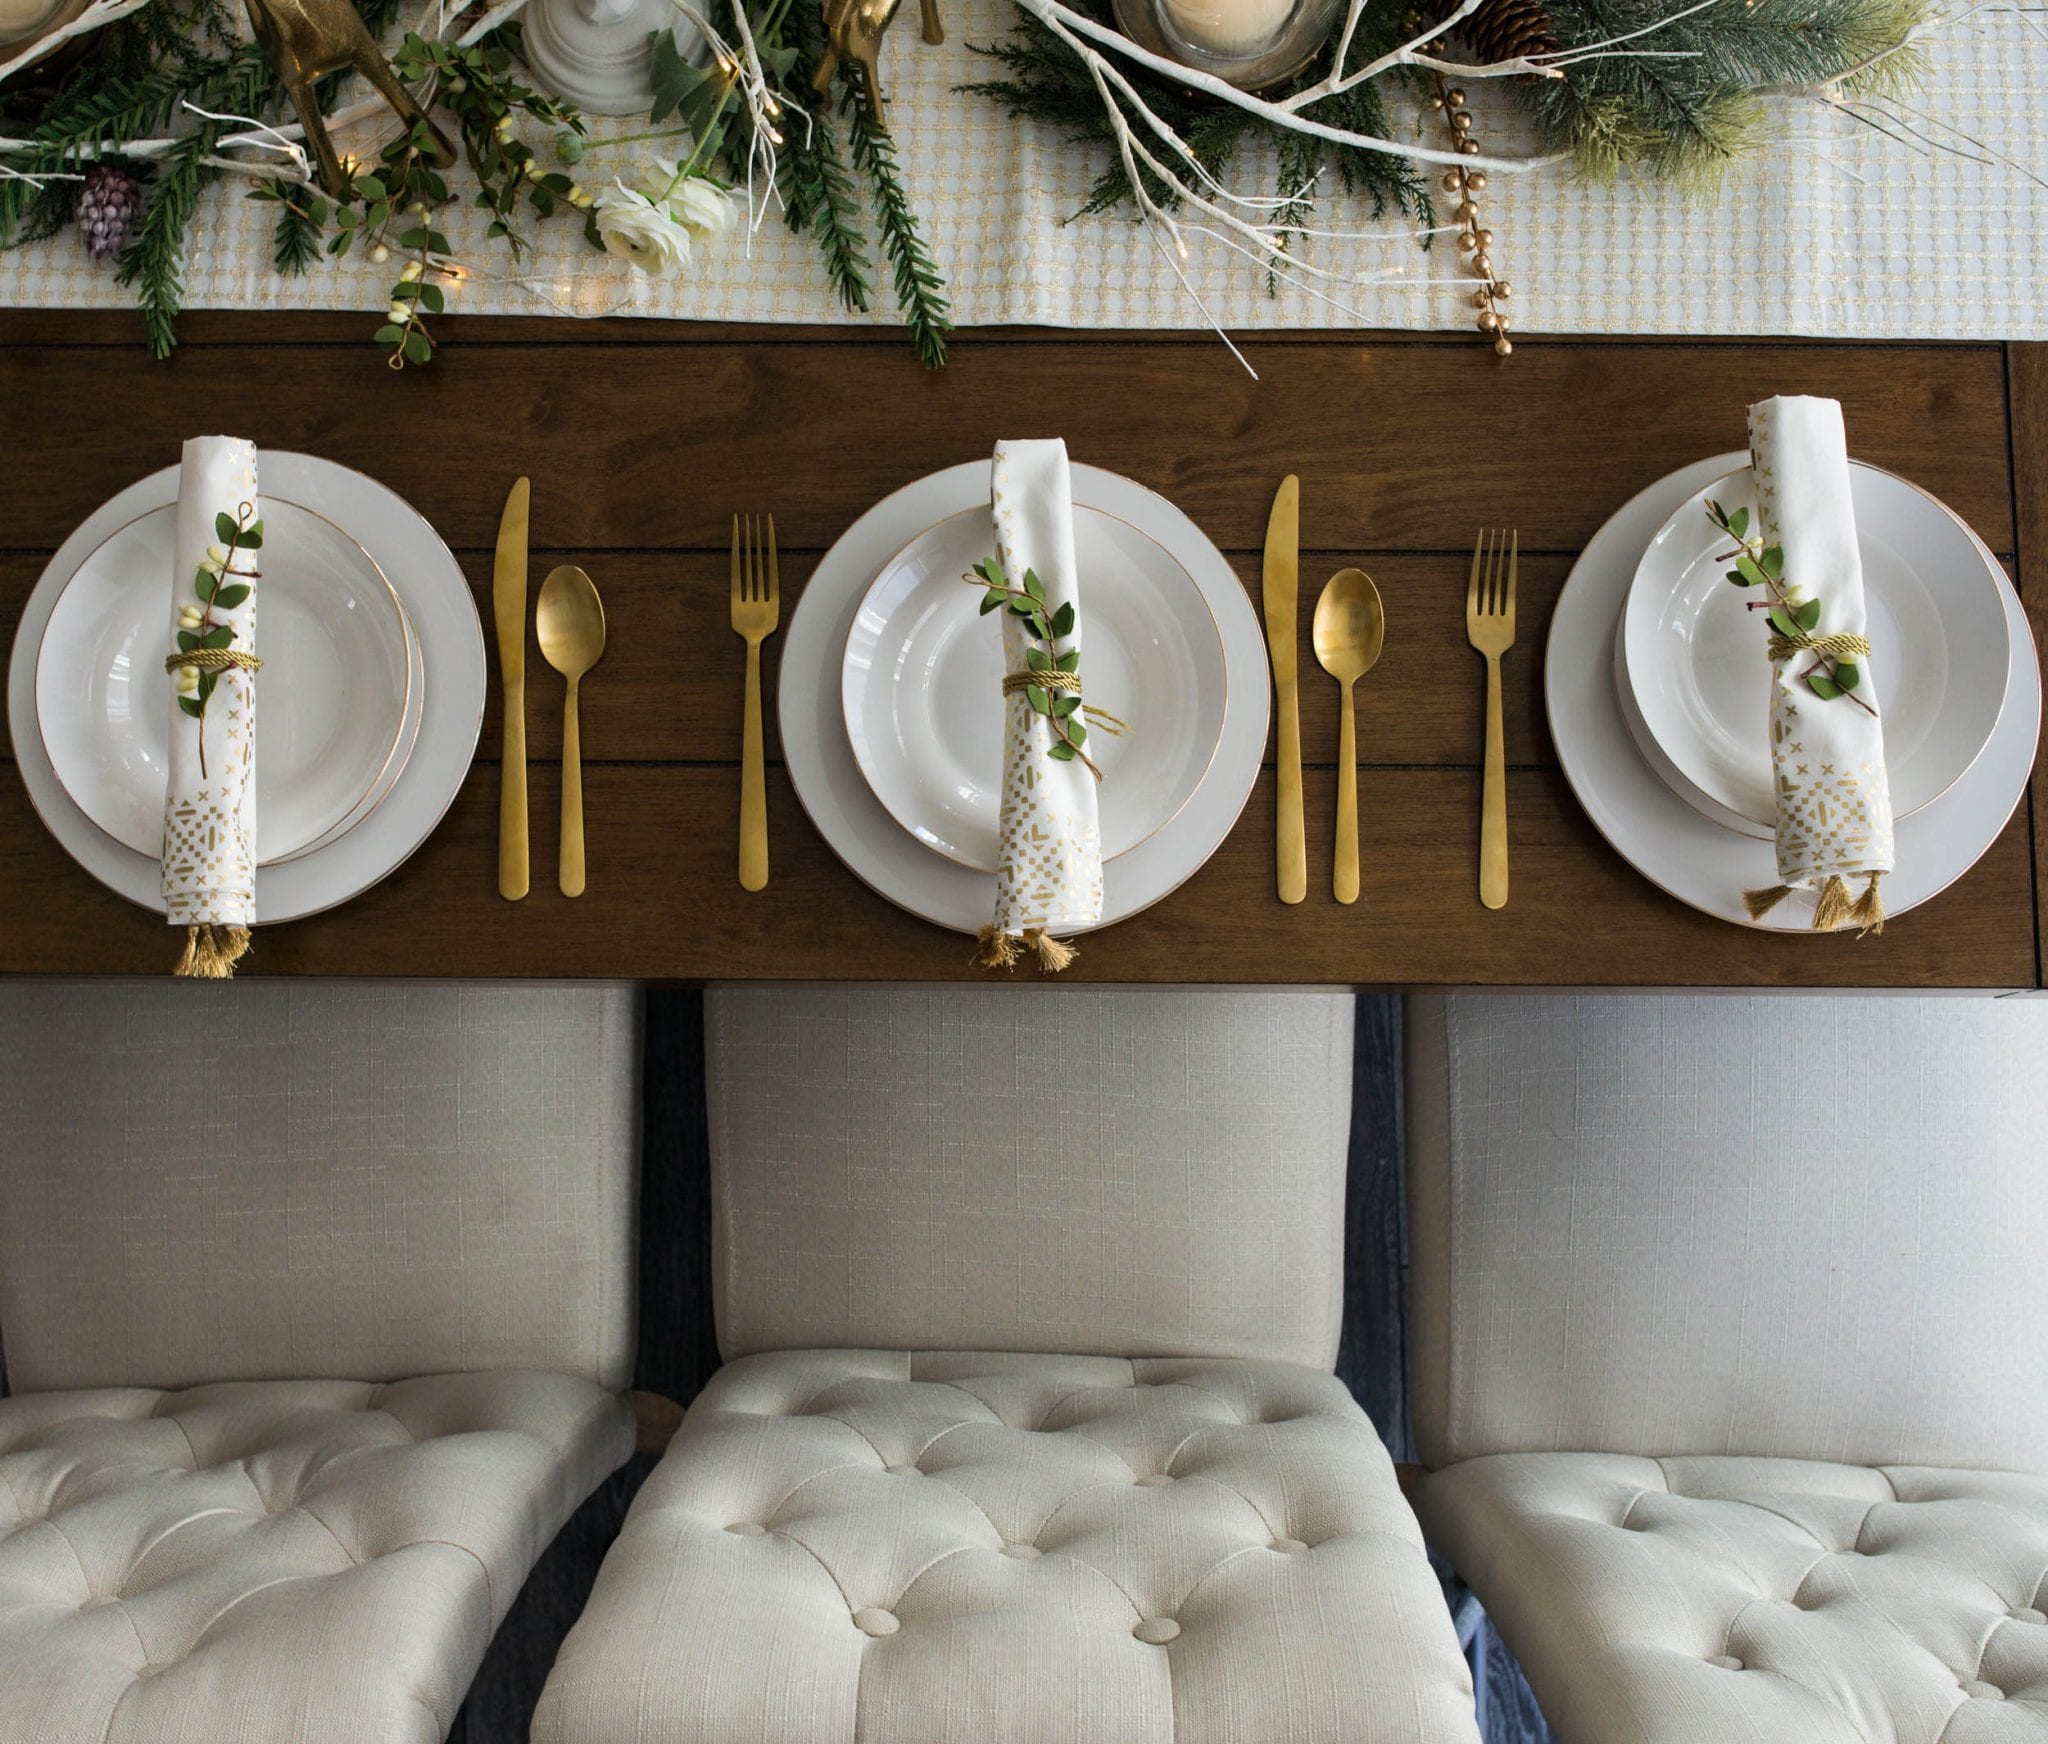 christmas decor ideas   holiday decor christmas table   christmas table decor white   christmas tablescapes   christmas table decorations   christmas decor white and gold   never skip brunch by cara newhart #decor #christmas #holiday